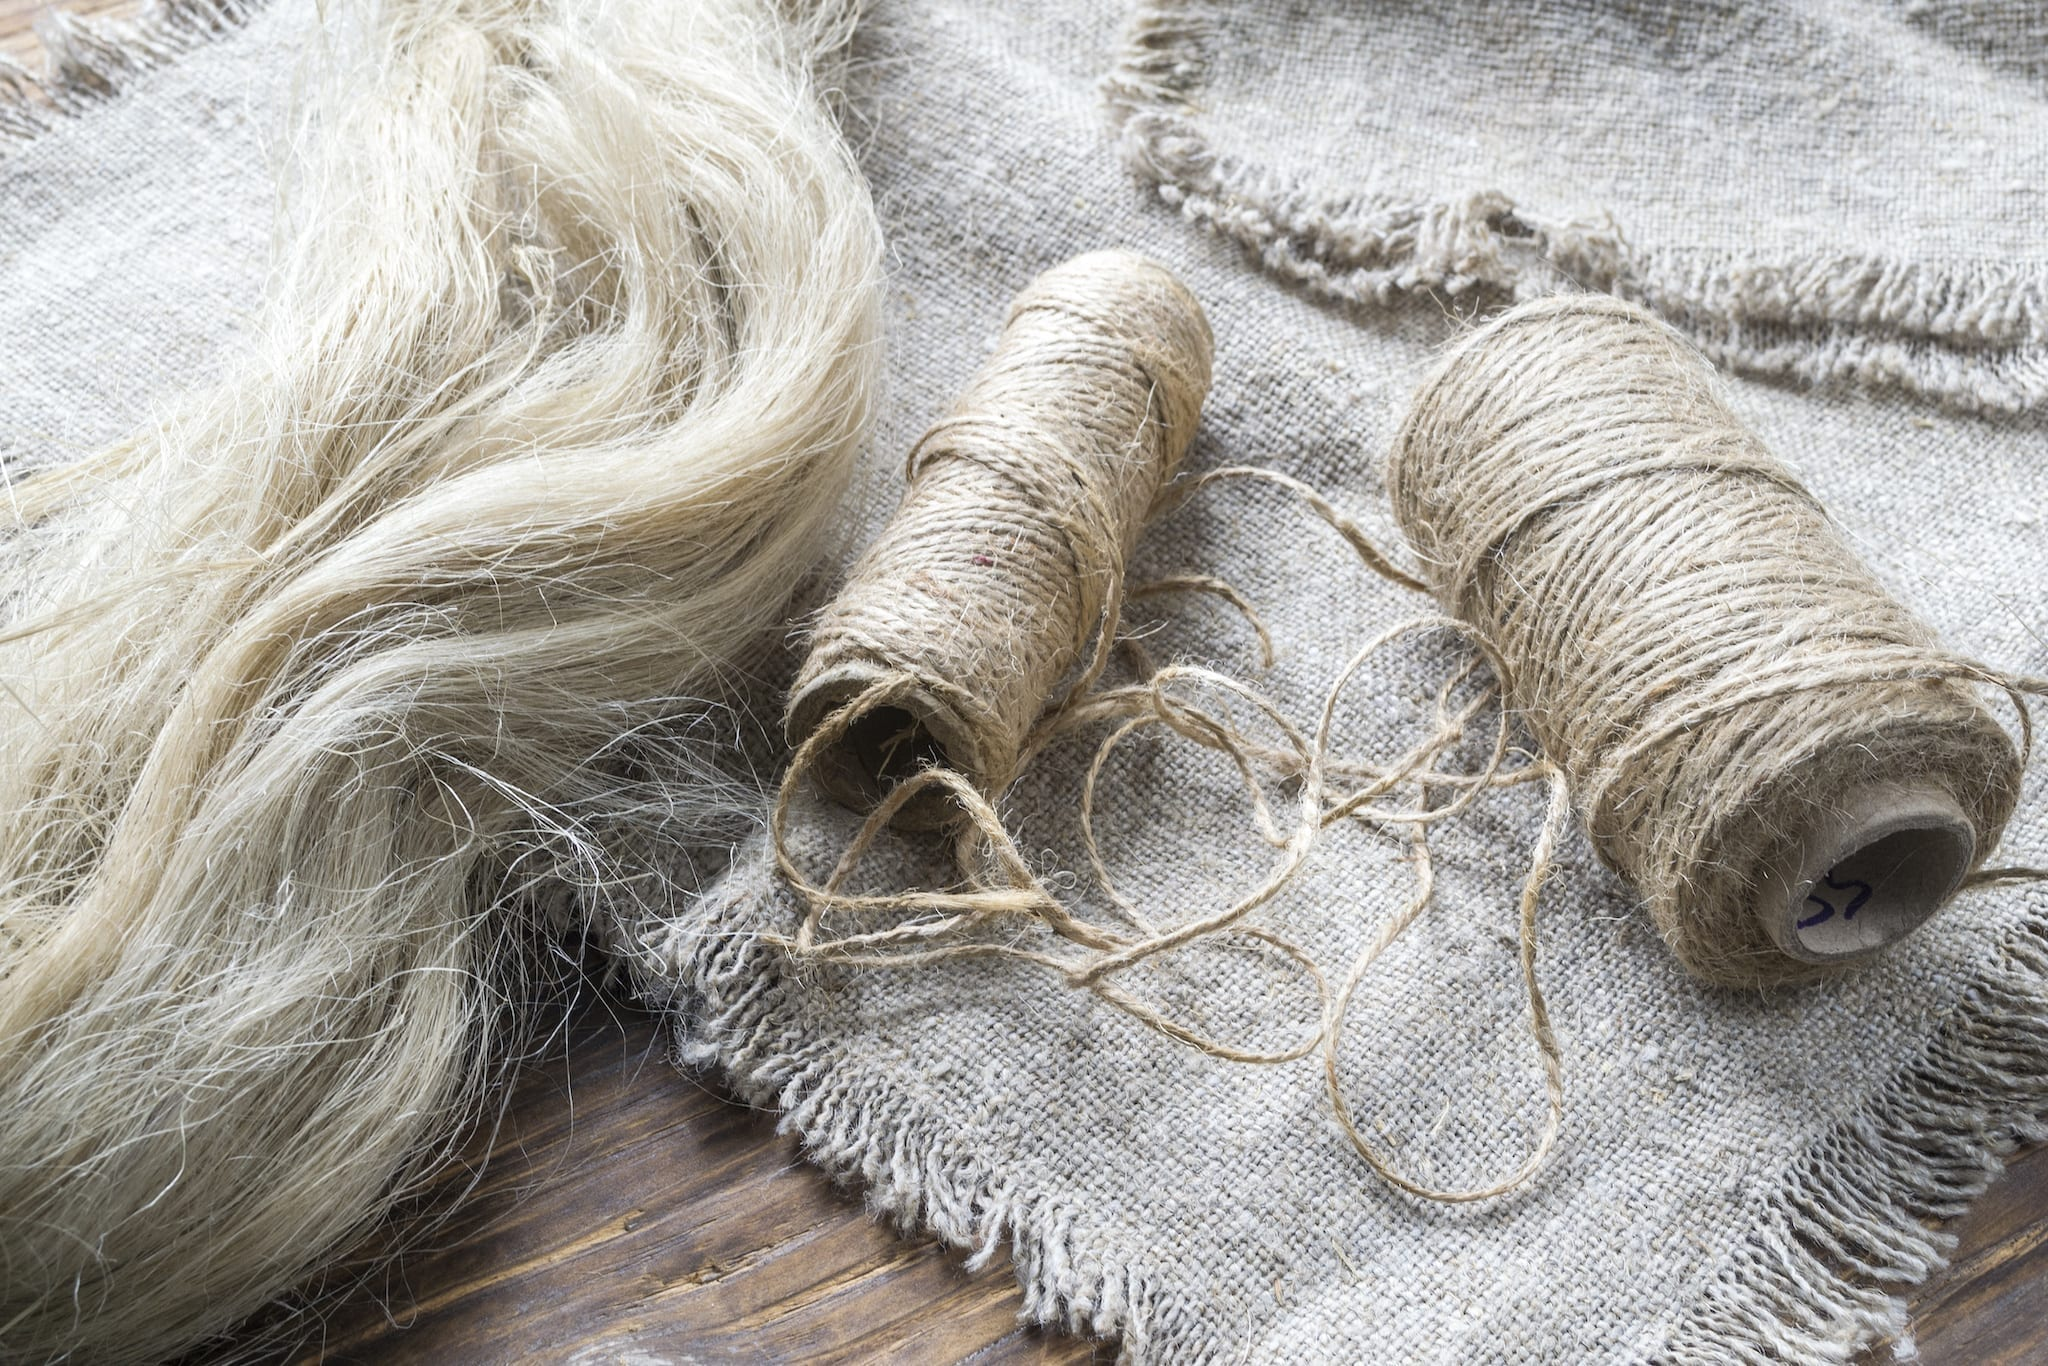 Separated flax fibres, yarn and linen fabric